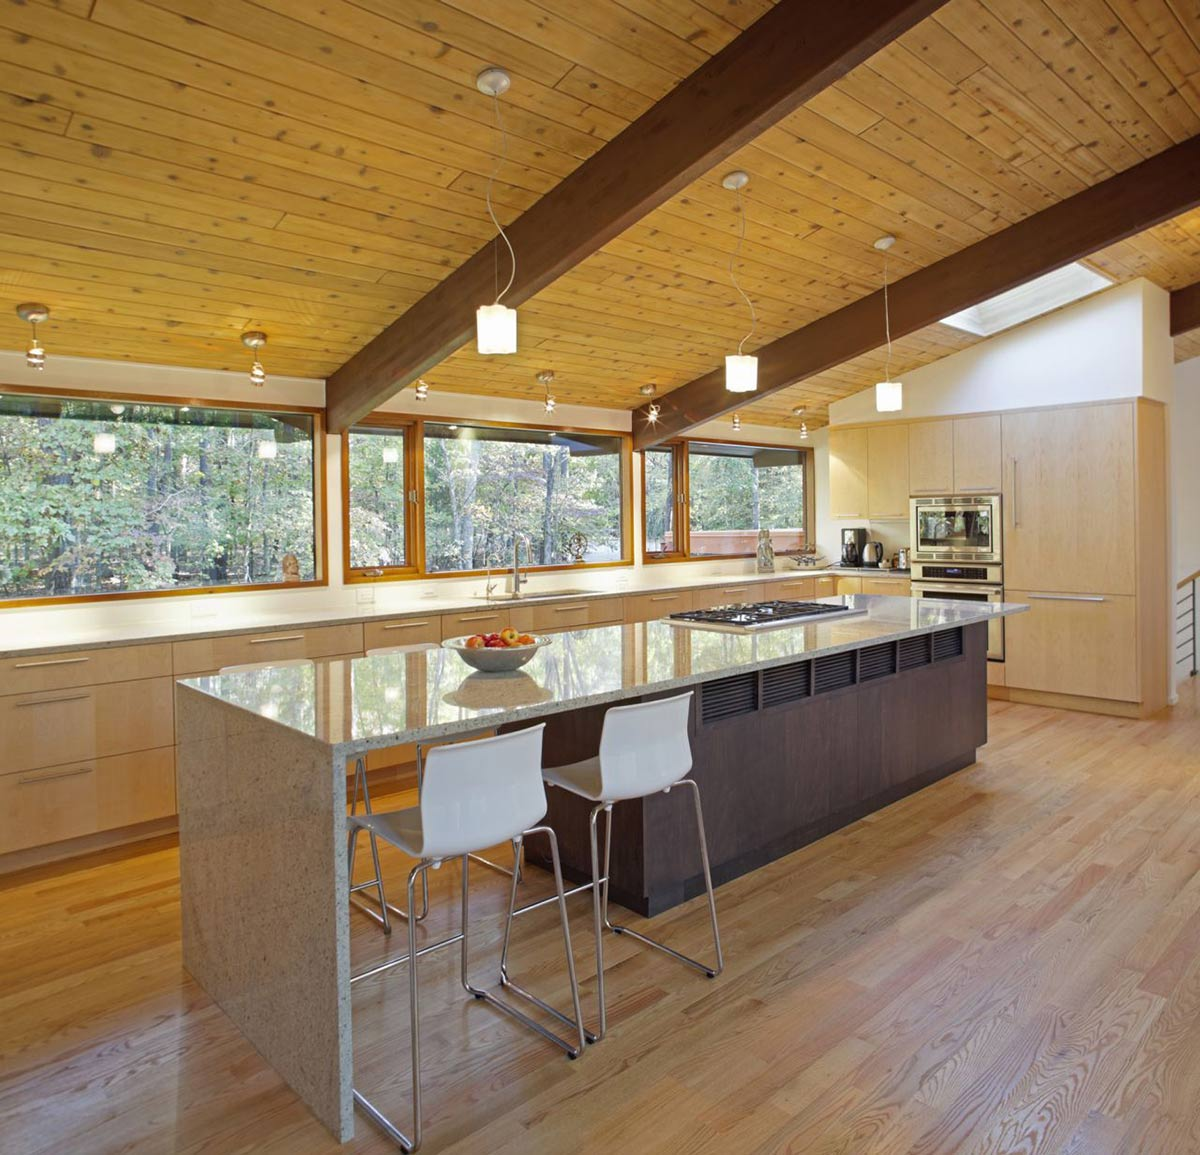 Kitchen Island, Breakfast Table, Deck House Renovation in Chapel Hill, North Carolina